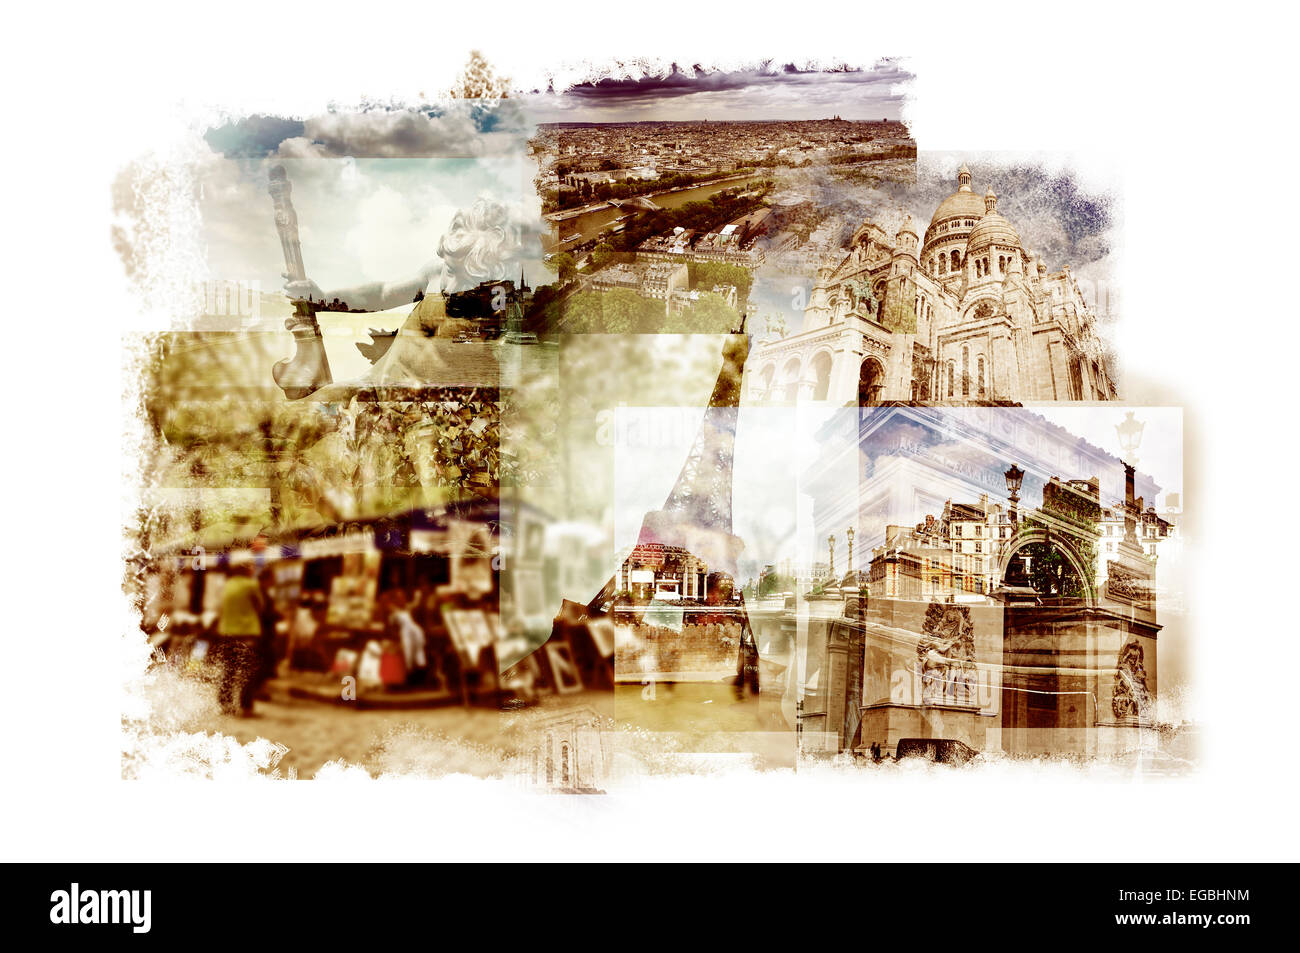 multiple exposures of different landmarks in Paris, France such as the Eiffel Tower, the Basilica of the Sacred - Stock Image